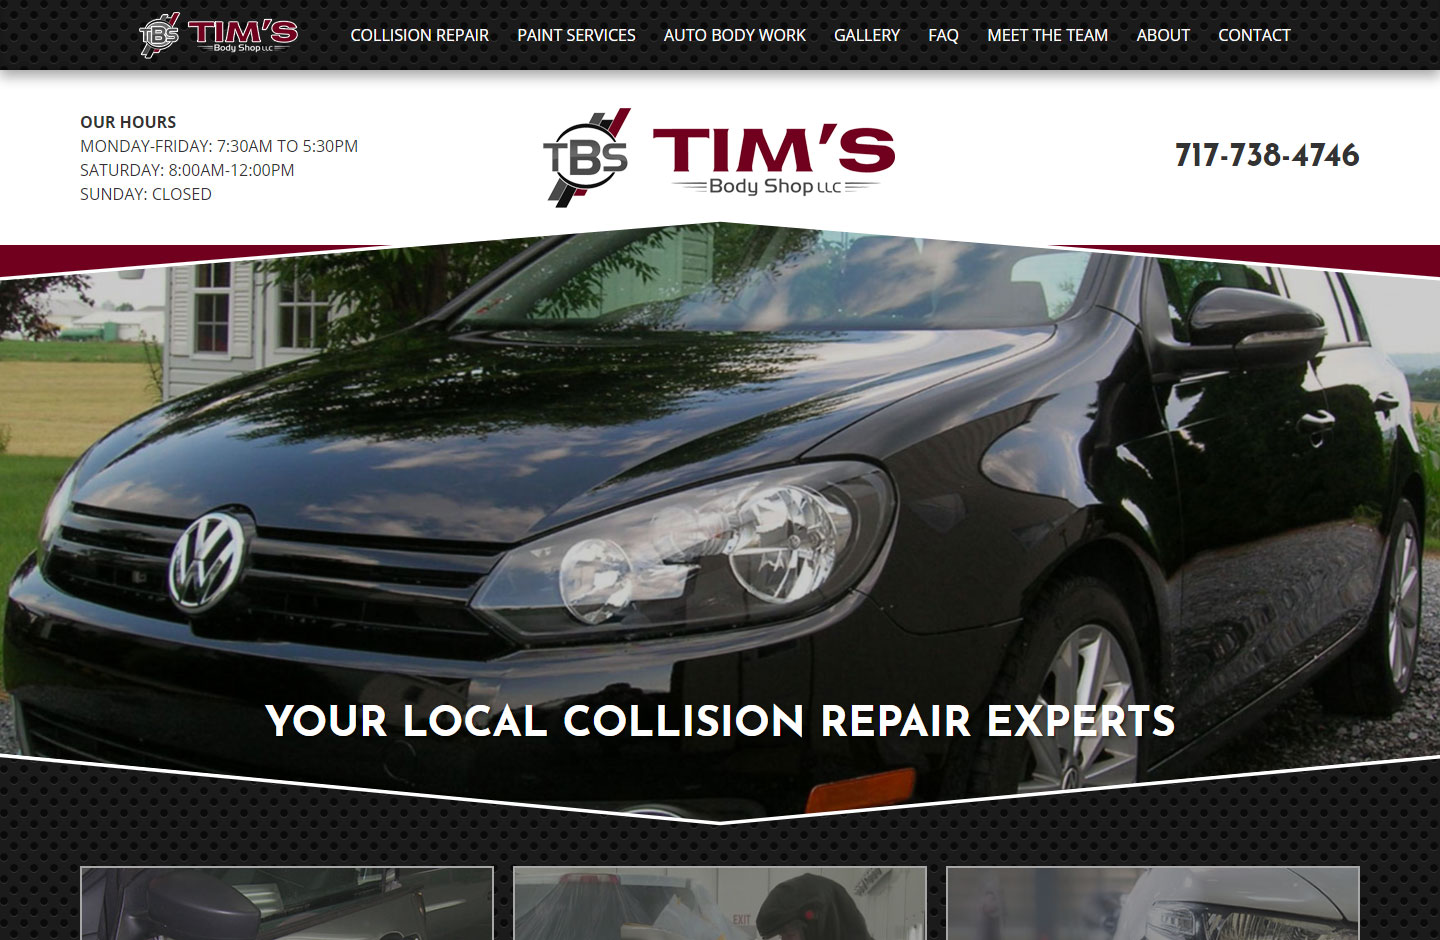 Tim's Body Shop